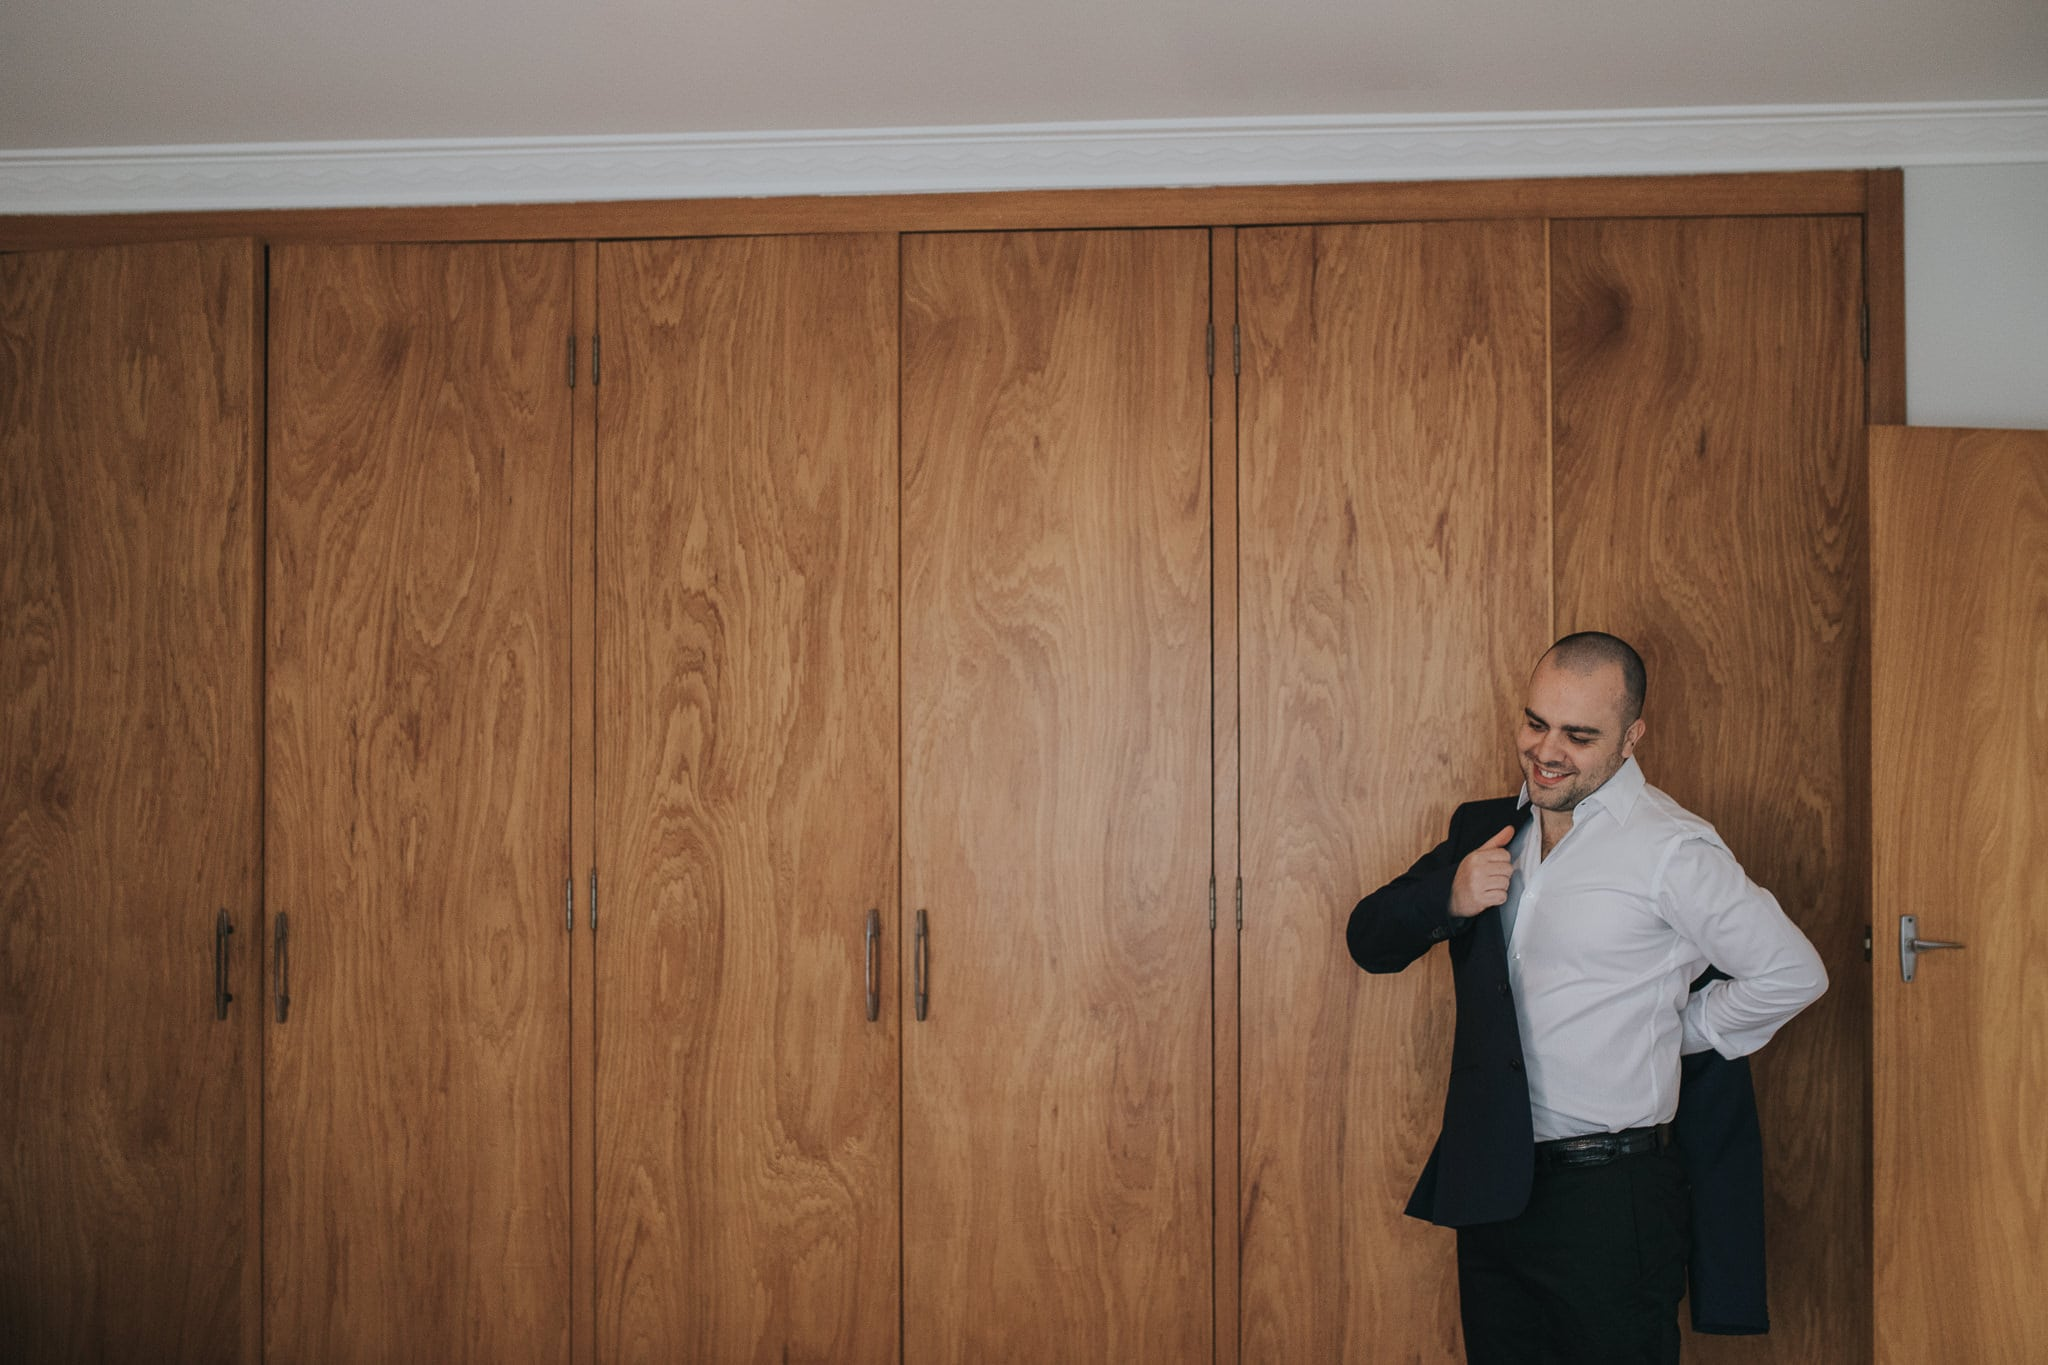 Groom getting ready - Jacket with simple background - Photo in Melbourne